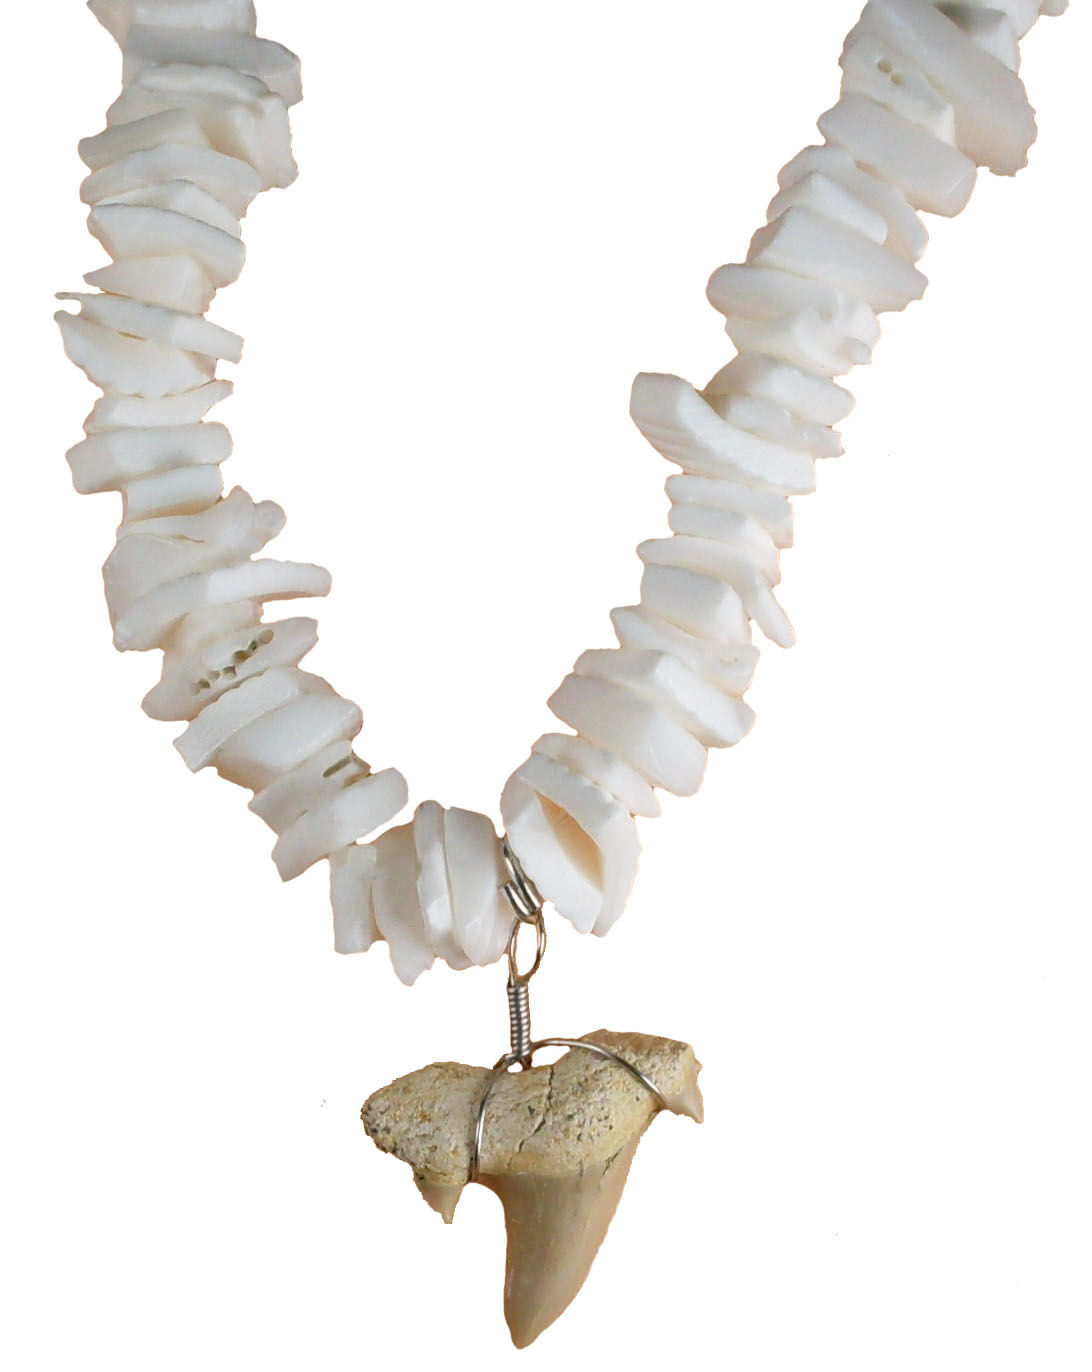 Shark Tooth Necklace #4